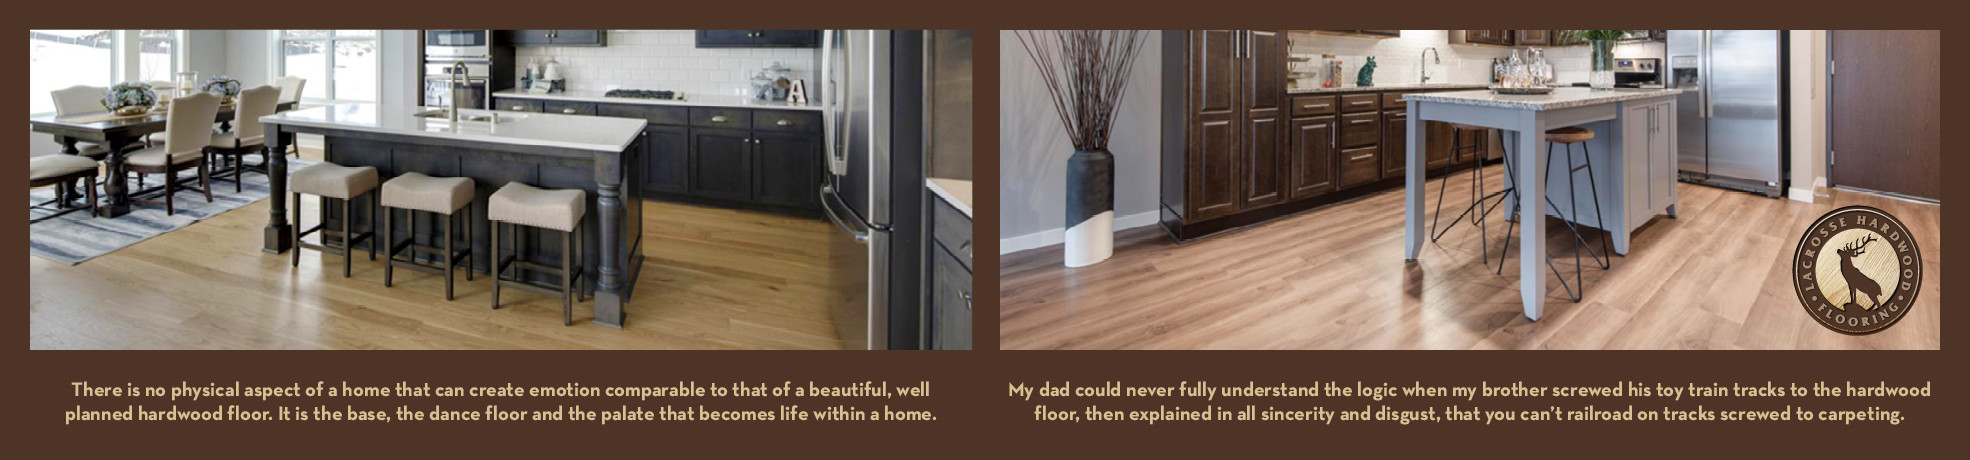 white oak select hardwood flooring of lacrosse hardwood flooring walnut white oak red oak hickory inside lhfsliderv24